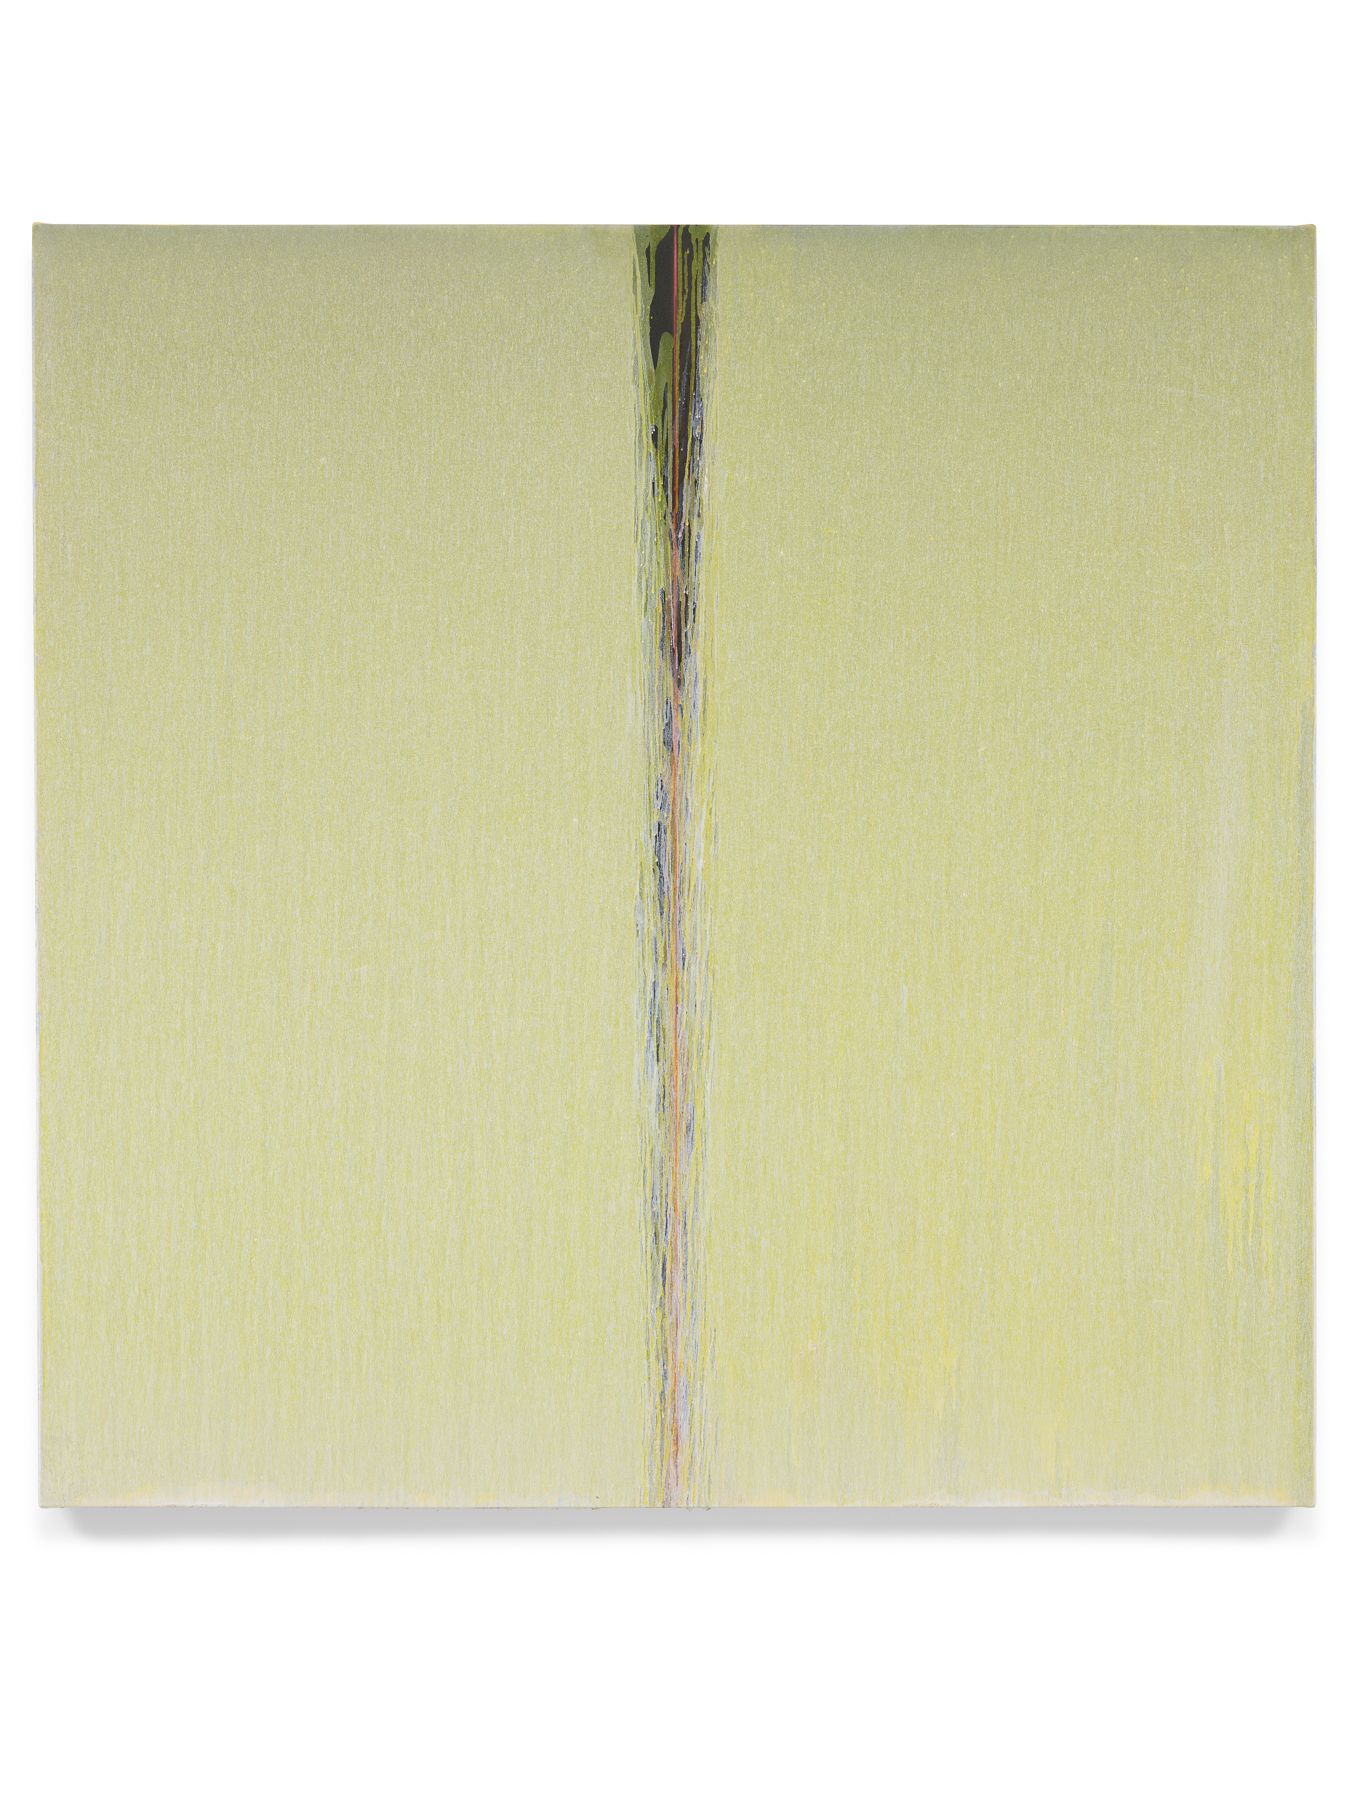 Pat Steir  Yellow, 2018